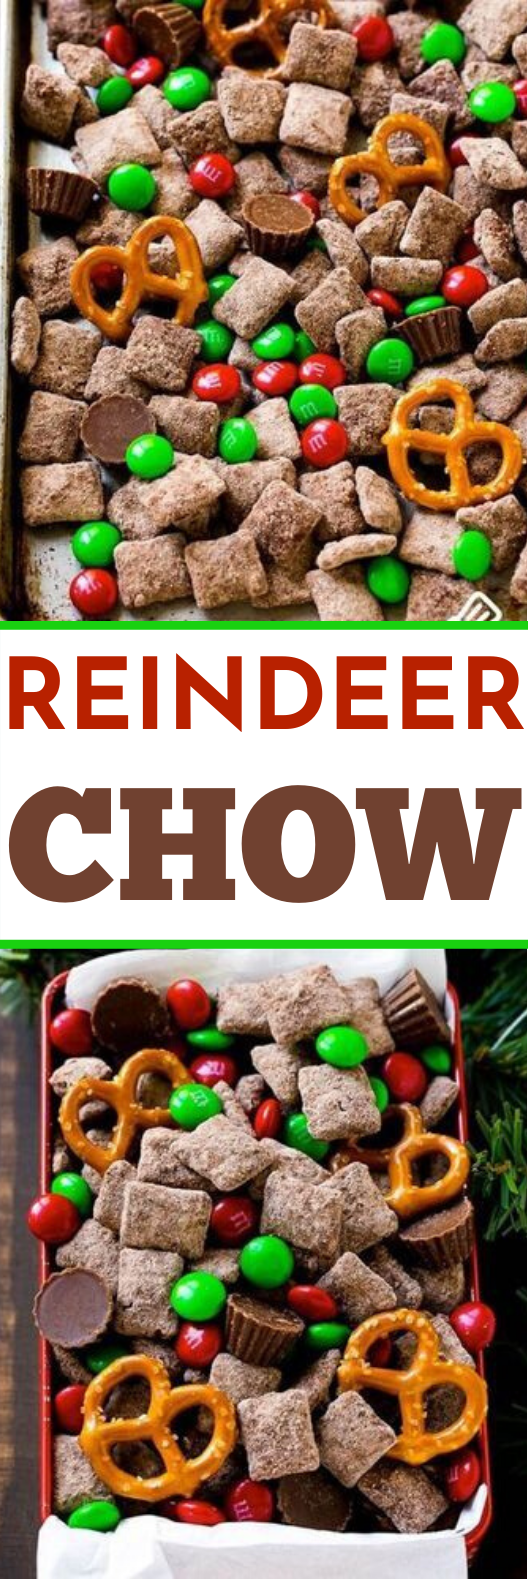 Reindeer Chow #desserts #christmas #snacks #partyfood #holiday